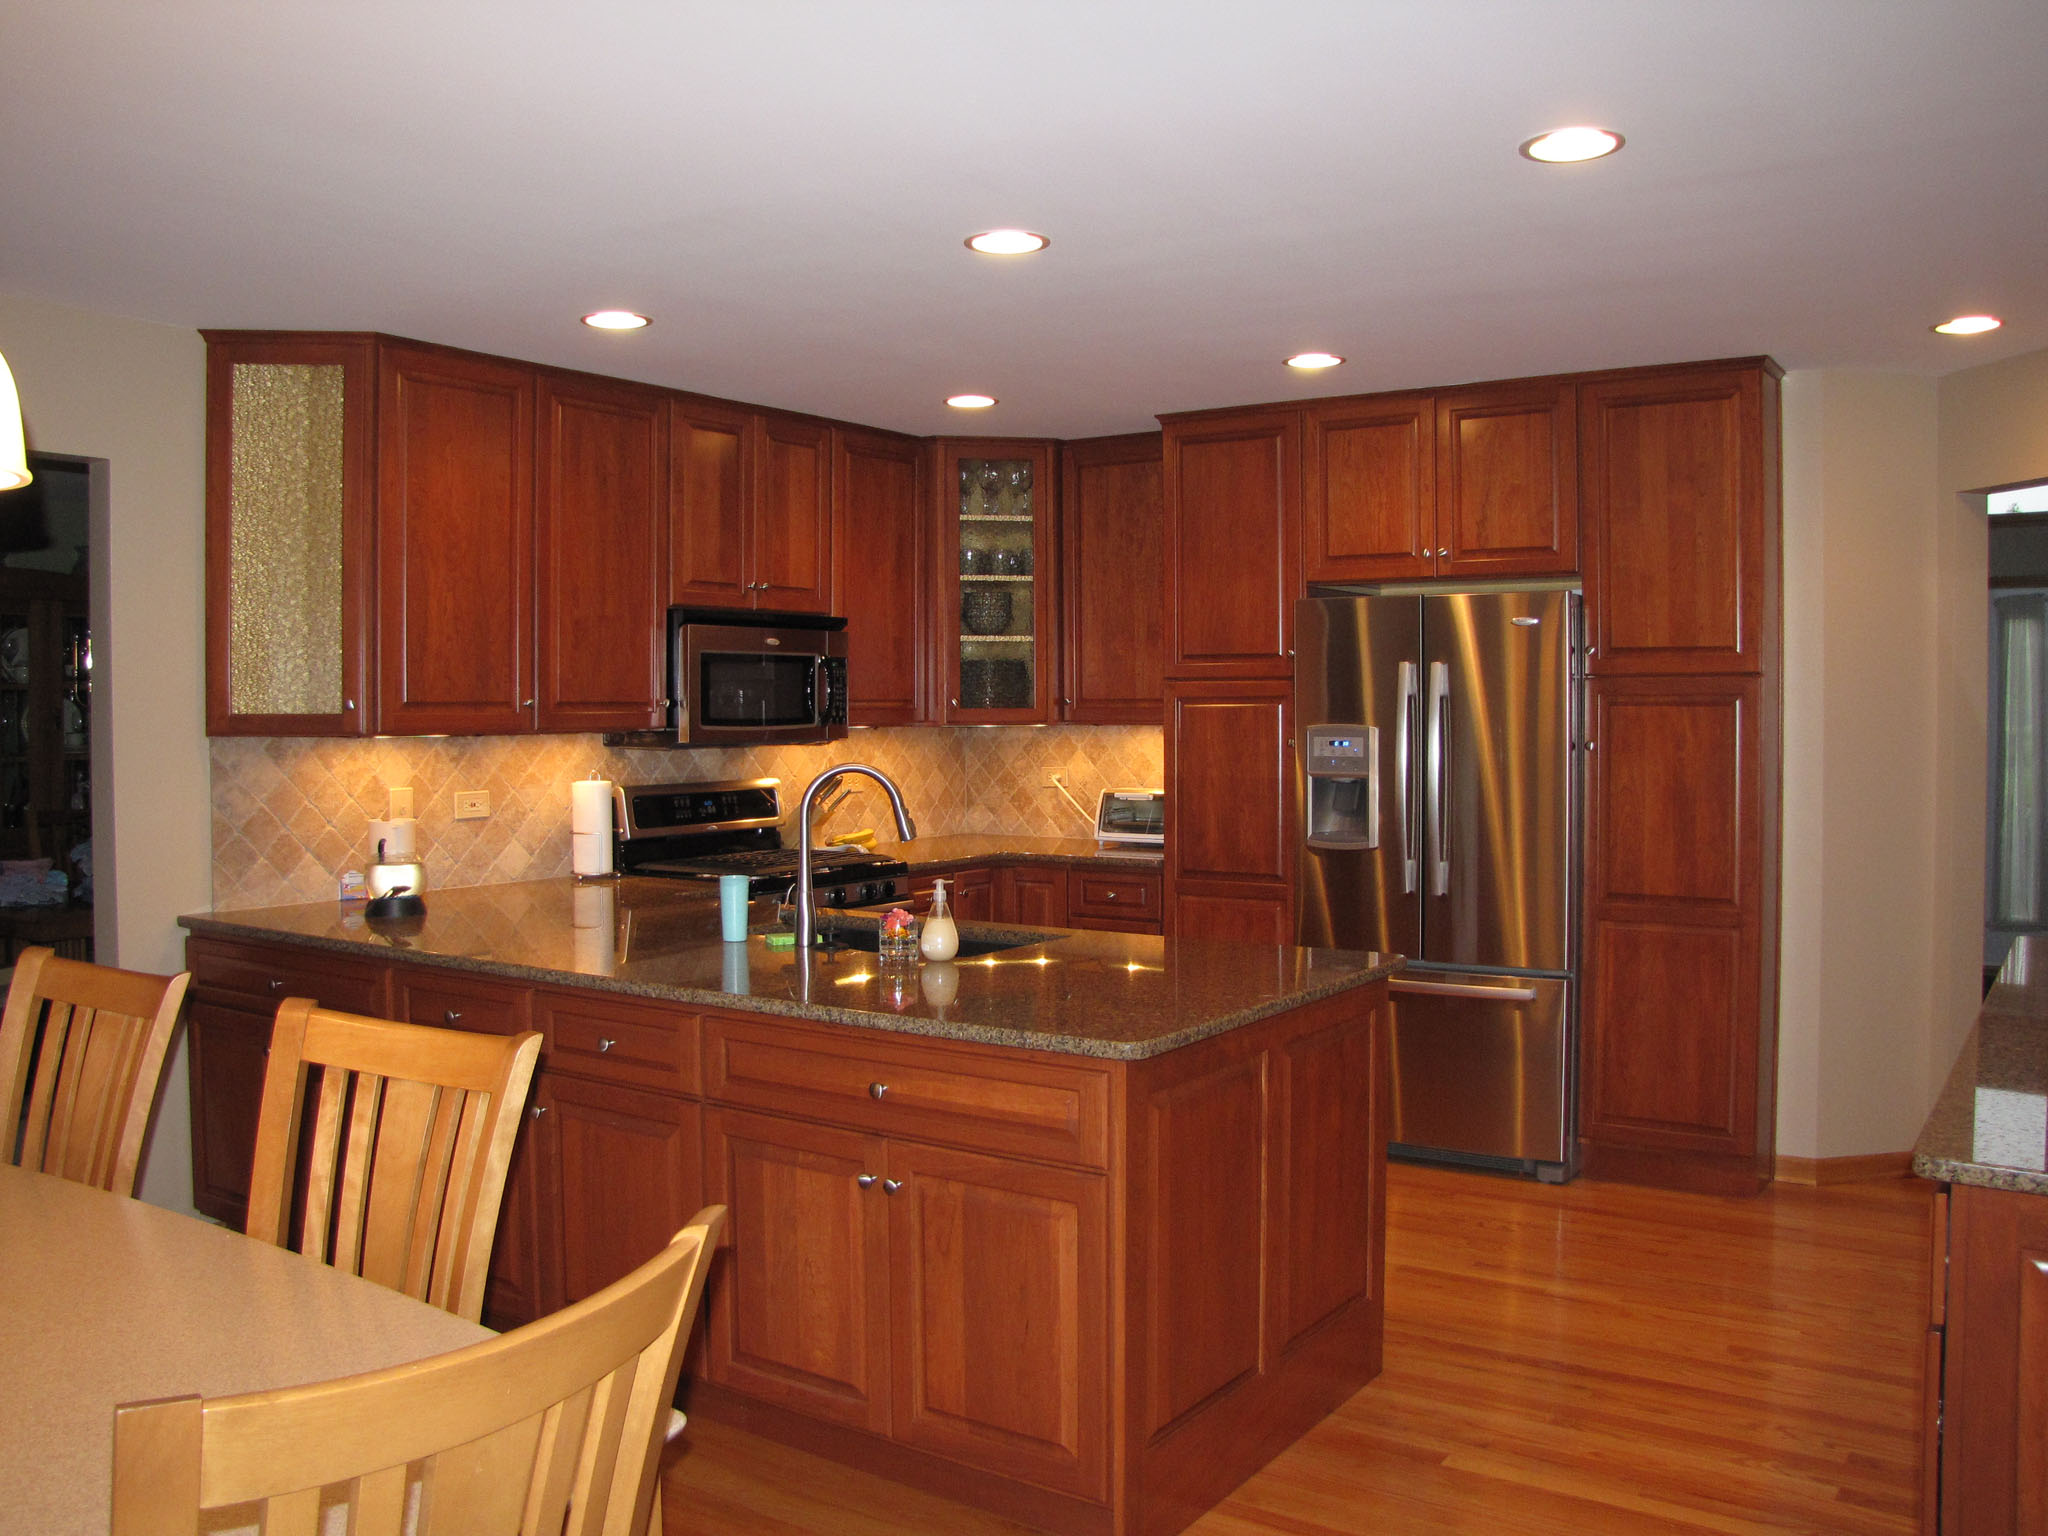 Remodel llc for Kitchen improvements